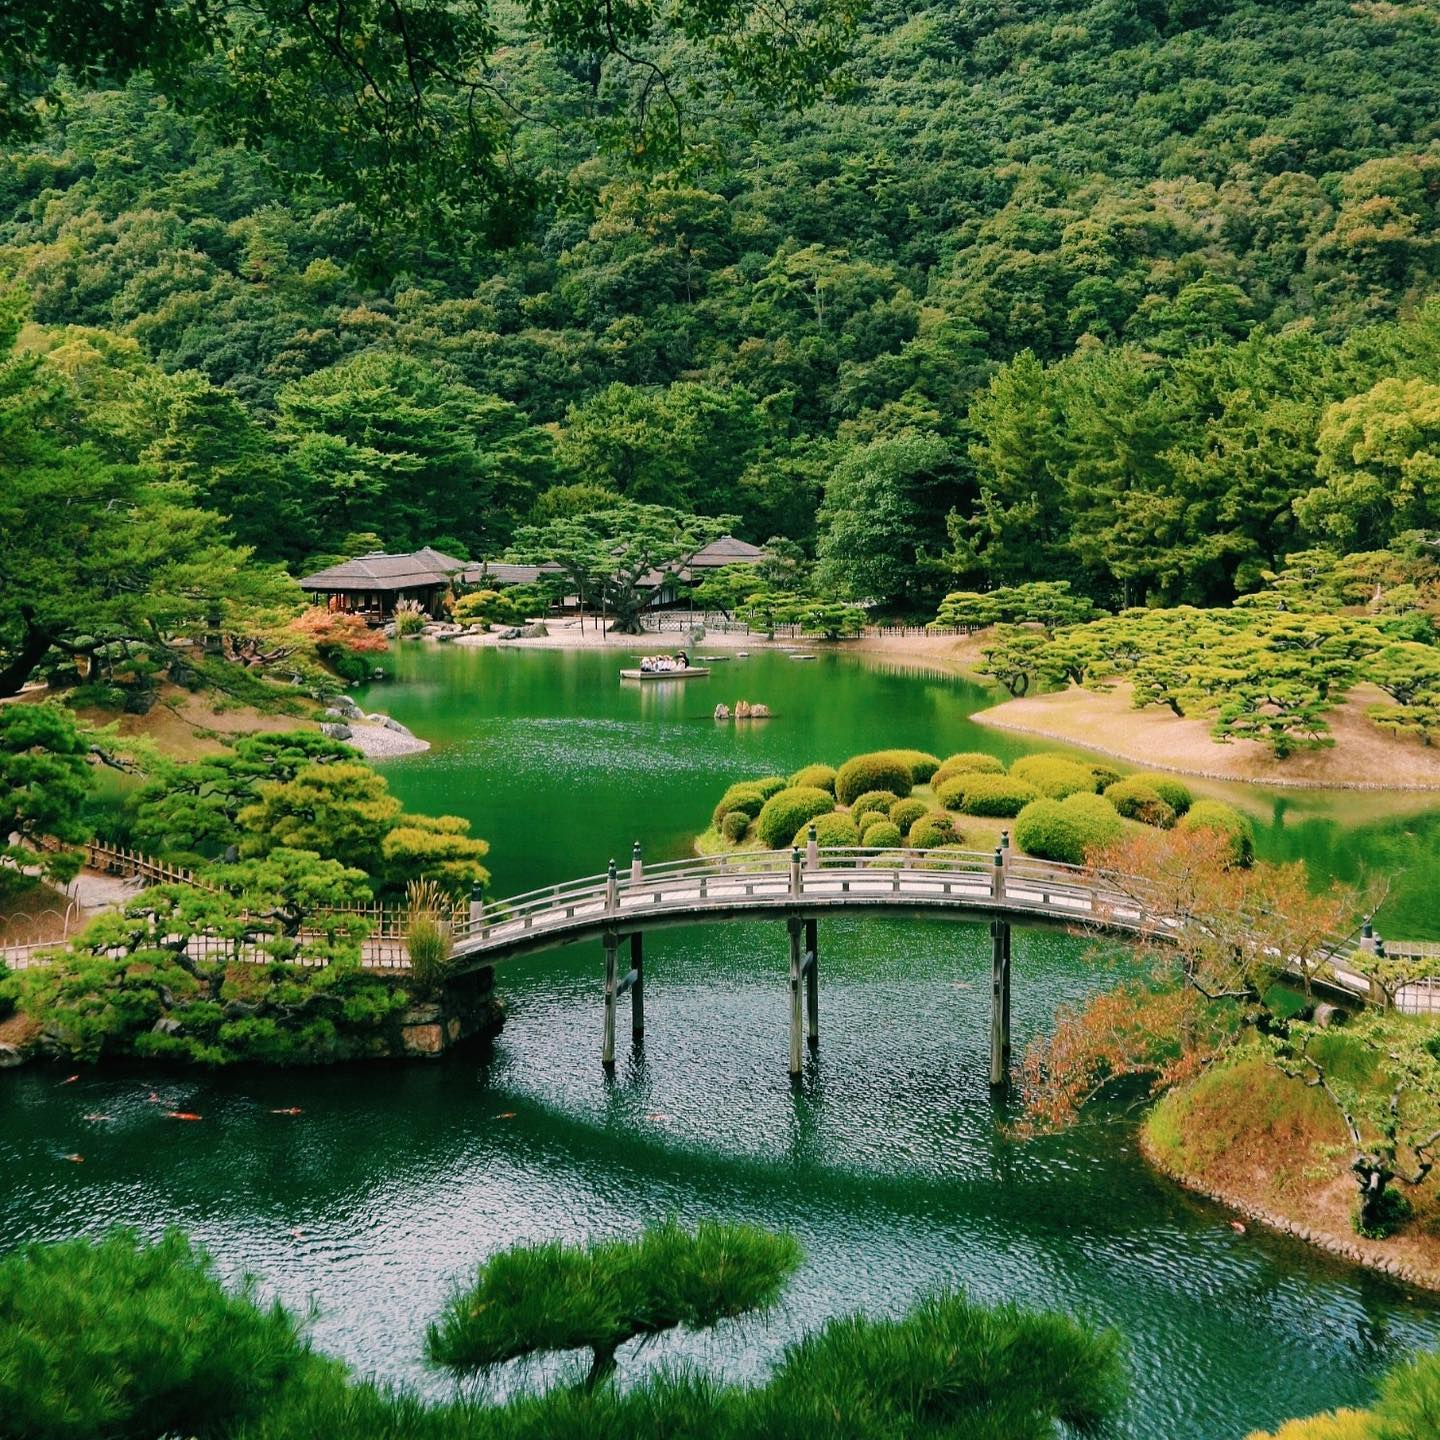 _ Here's this week's from AOI Global at Ritsurin-Koen in Takamatsu, Kagawa Prefecture.   Ritsurin-Koen dates back to the early 17th century and covers 750,000 square meters, featuring traditional landscaping, ponds, bridges, a teahouse and a boat ride. With its beautiful buildings and the incorporation of Mt. Shiun as a backdrop, it is considered one of the most famous historical gardens in Japan.  #weeklyinspiration #remoteshooting #Ritsurin-Koen